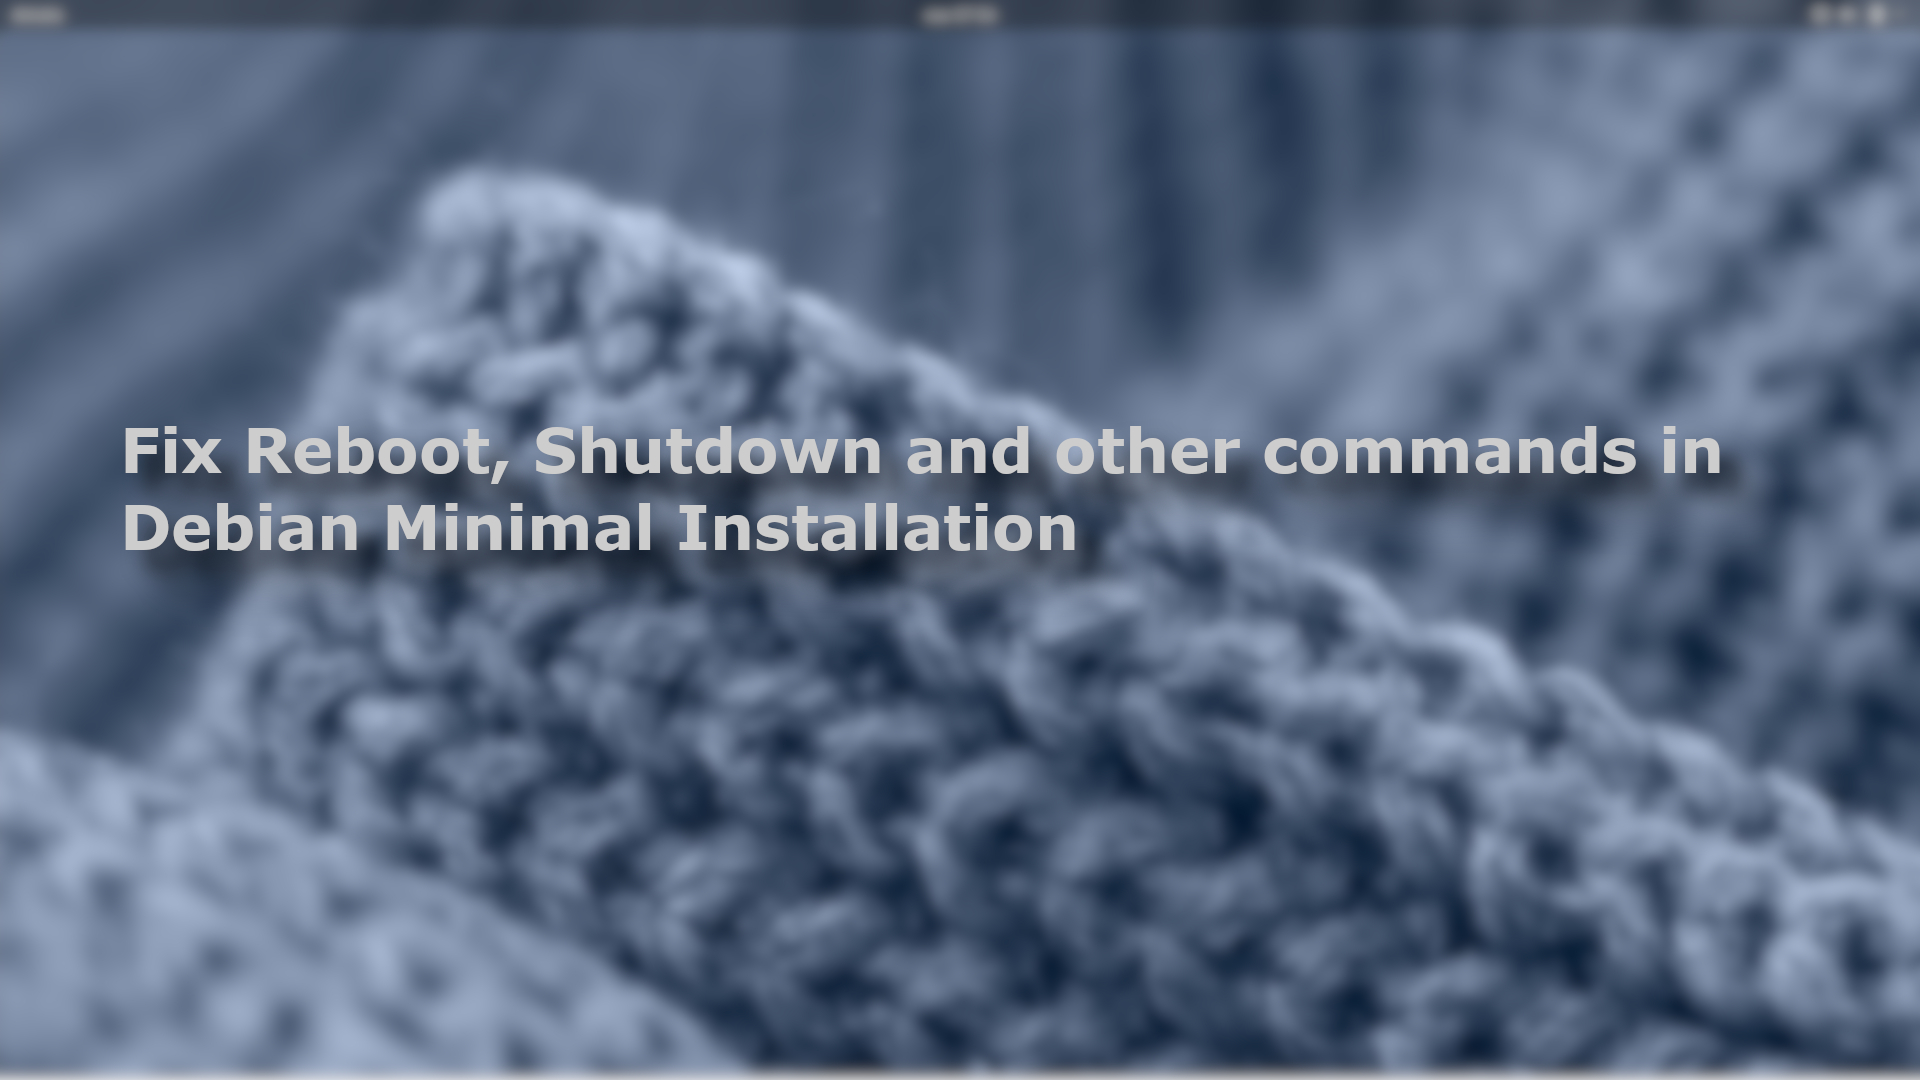 How to fix the problem of reboot, shutdown and other commands not found in Debian Minimal